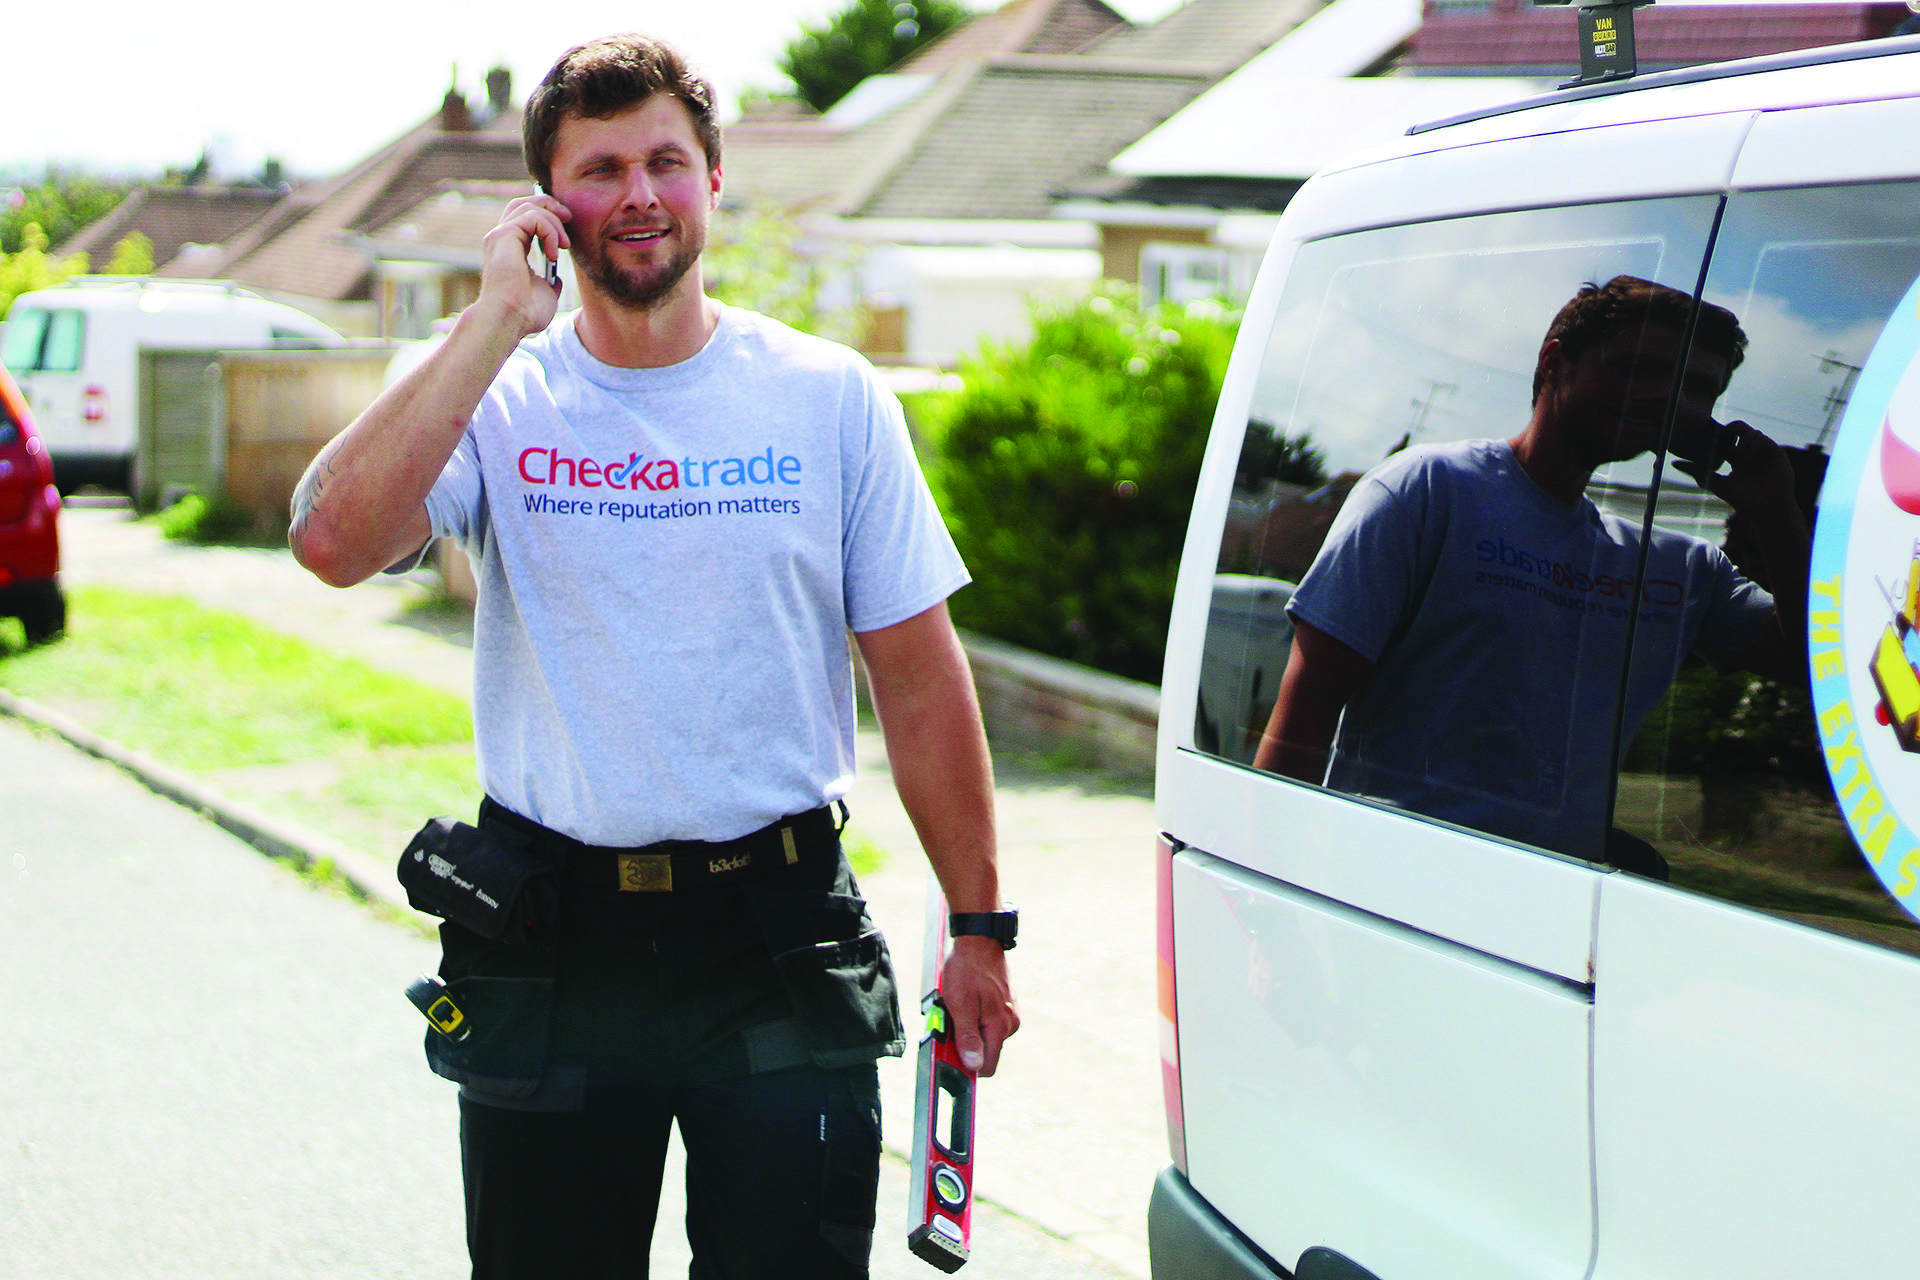 Win 6 months FREE Checkatrade membership plus £100 Amazon Voucher